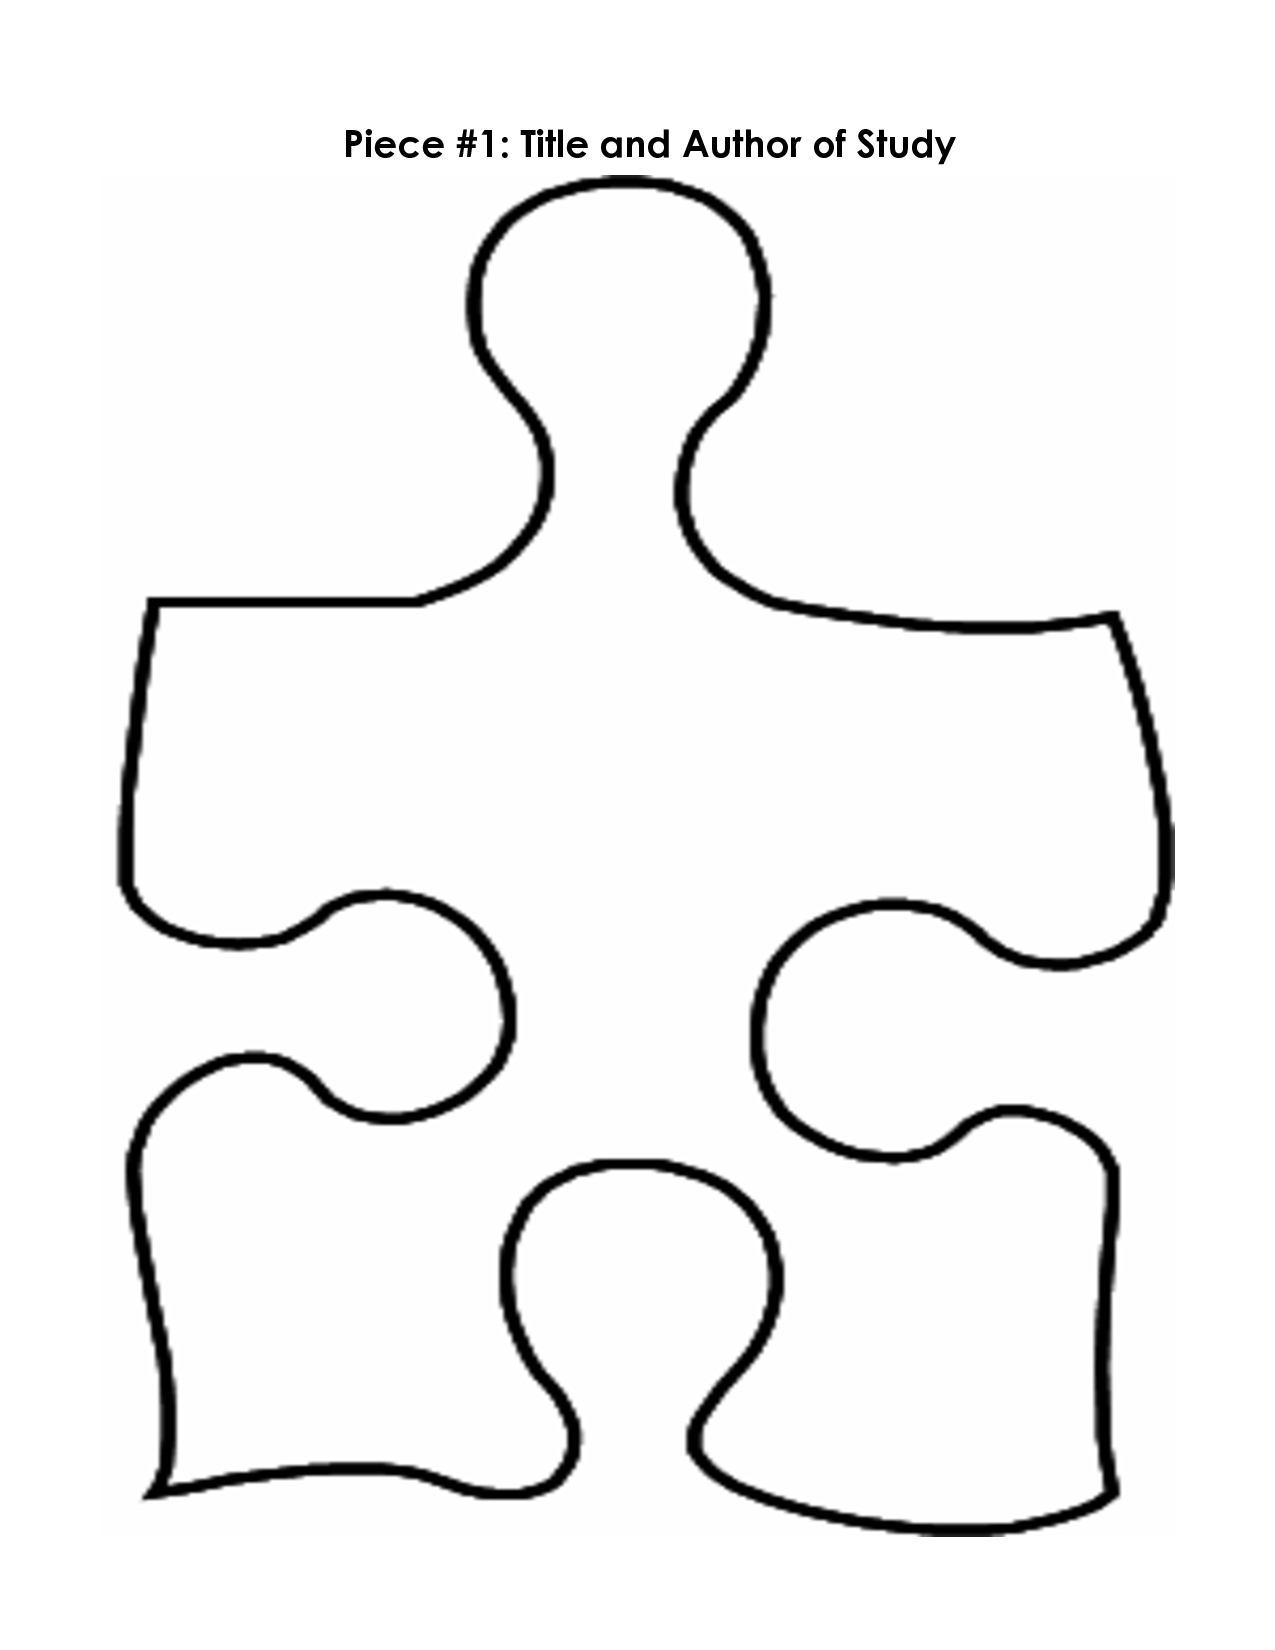 Free Puzzle Pieces Template, Download Free Clip Art, Free Clip Art - Printable 2 Piece Puzzles